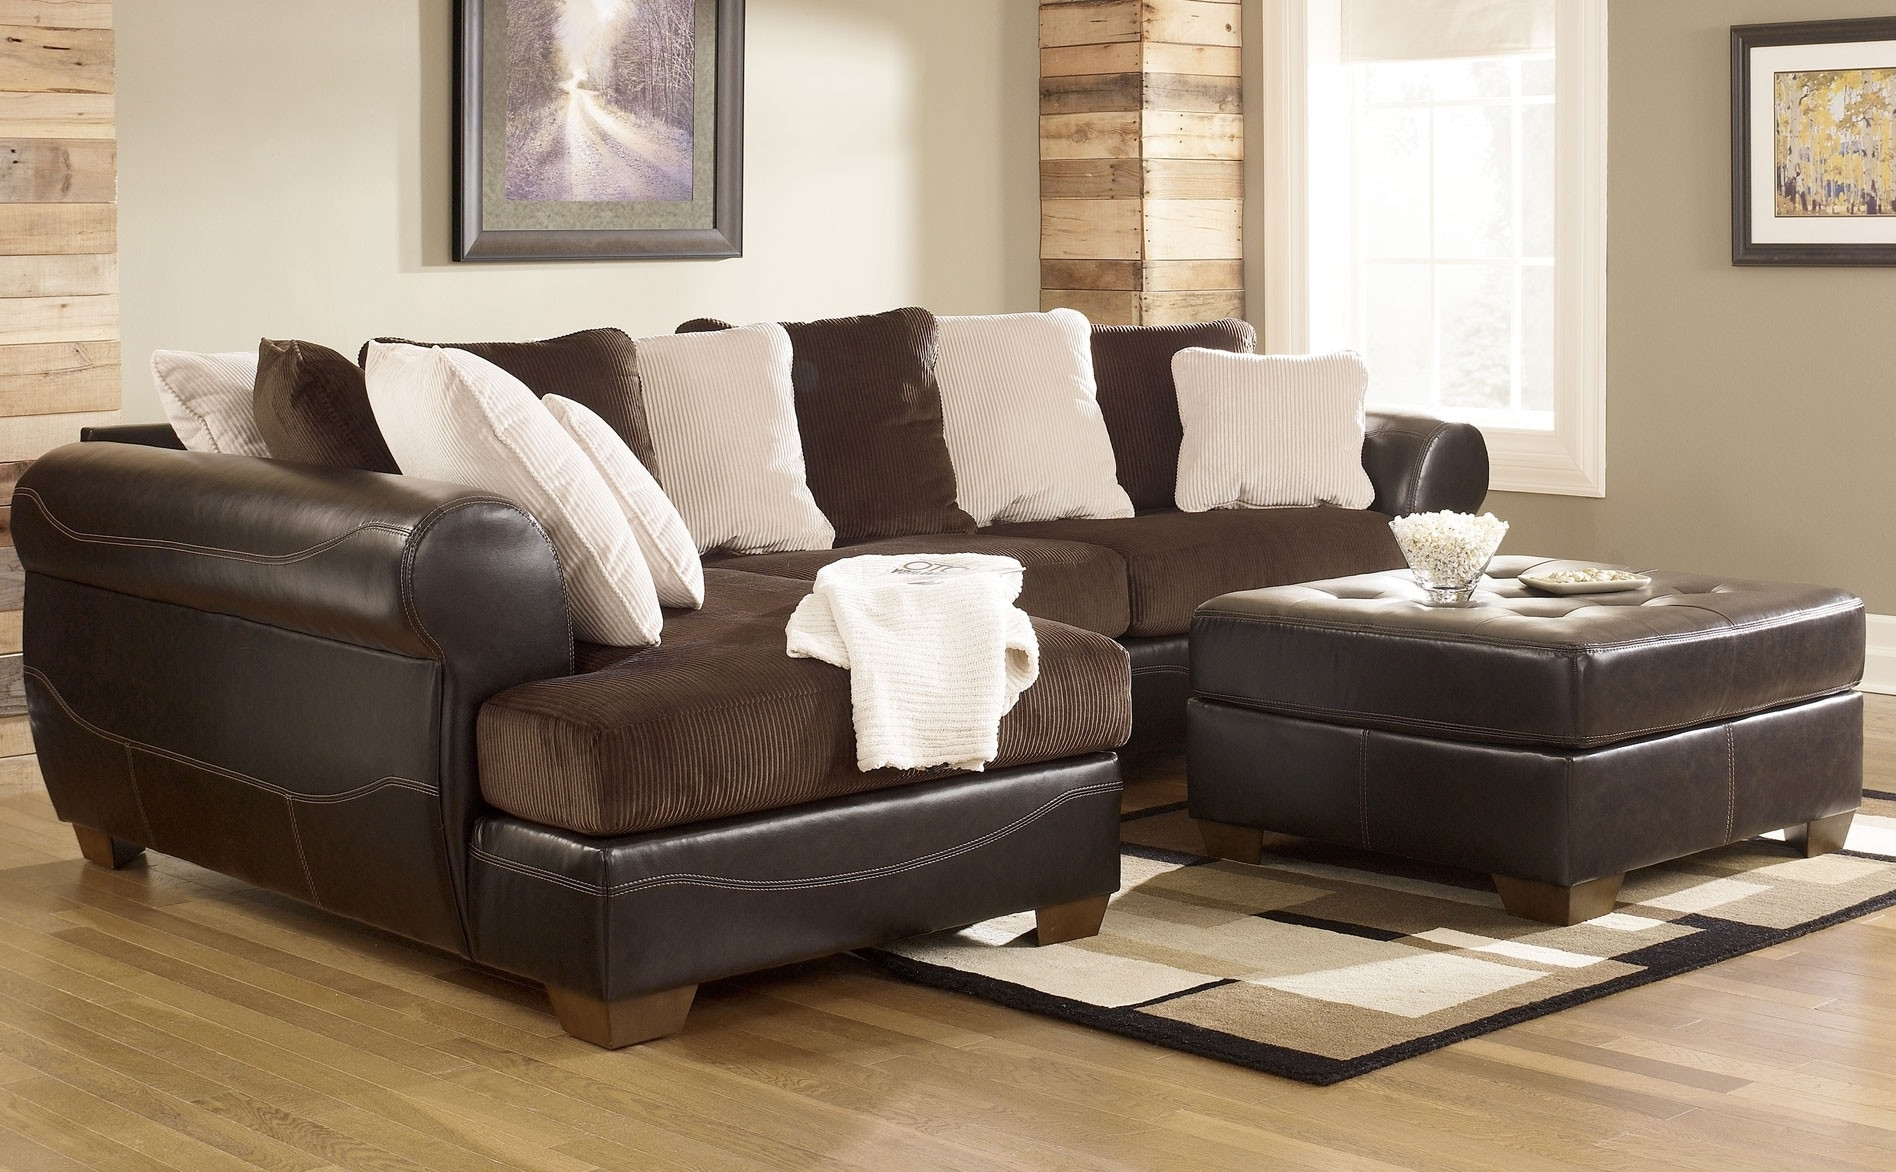 Featured Photo of Sectional Sofas At Ashley Furniture